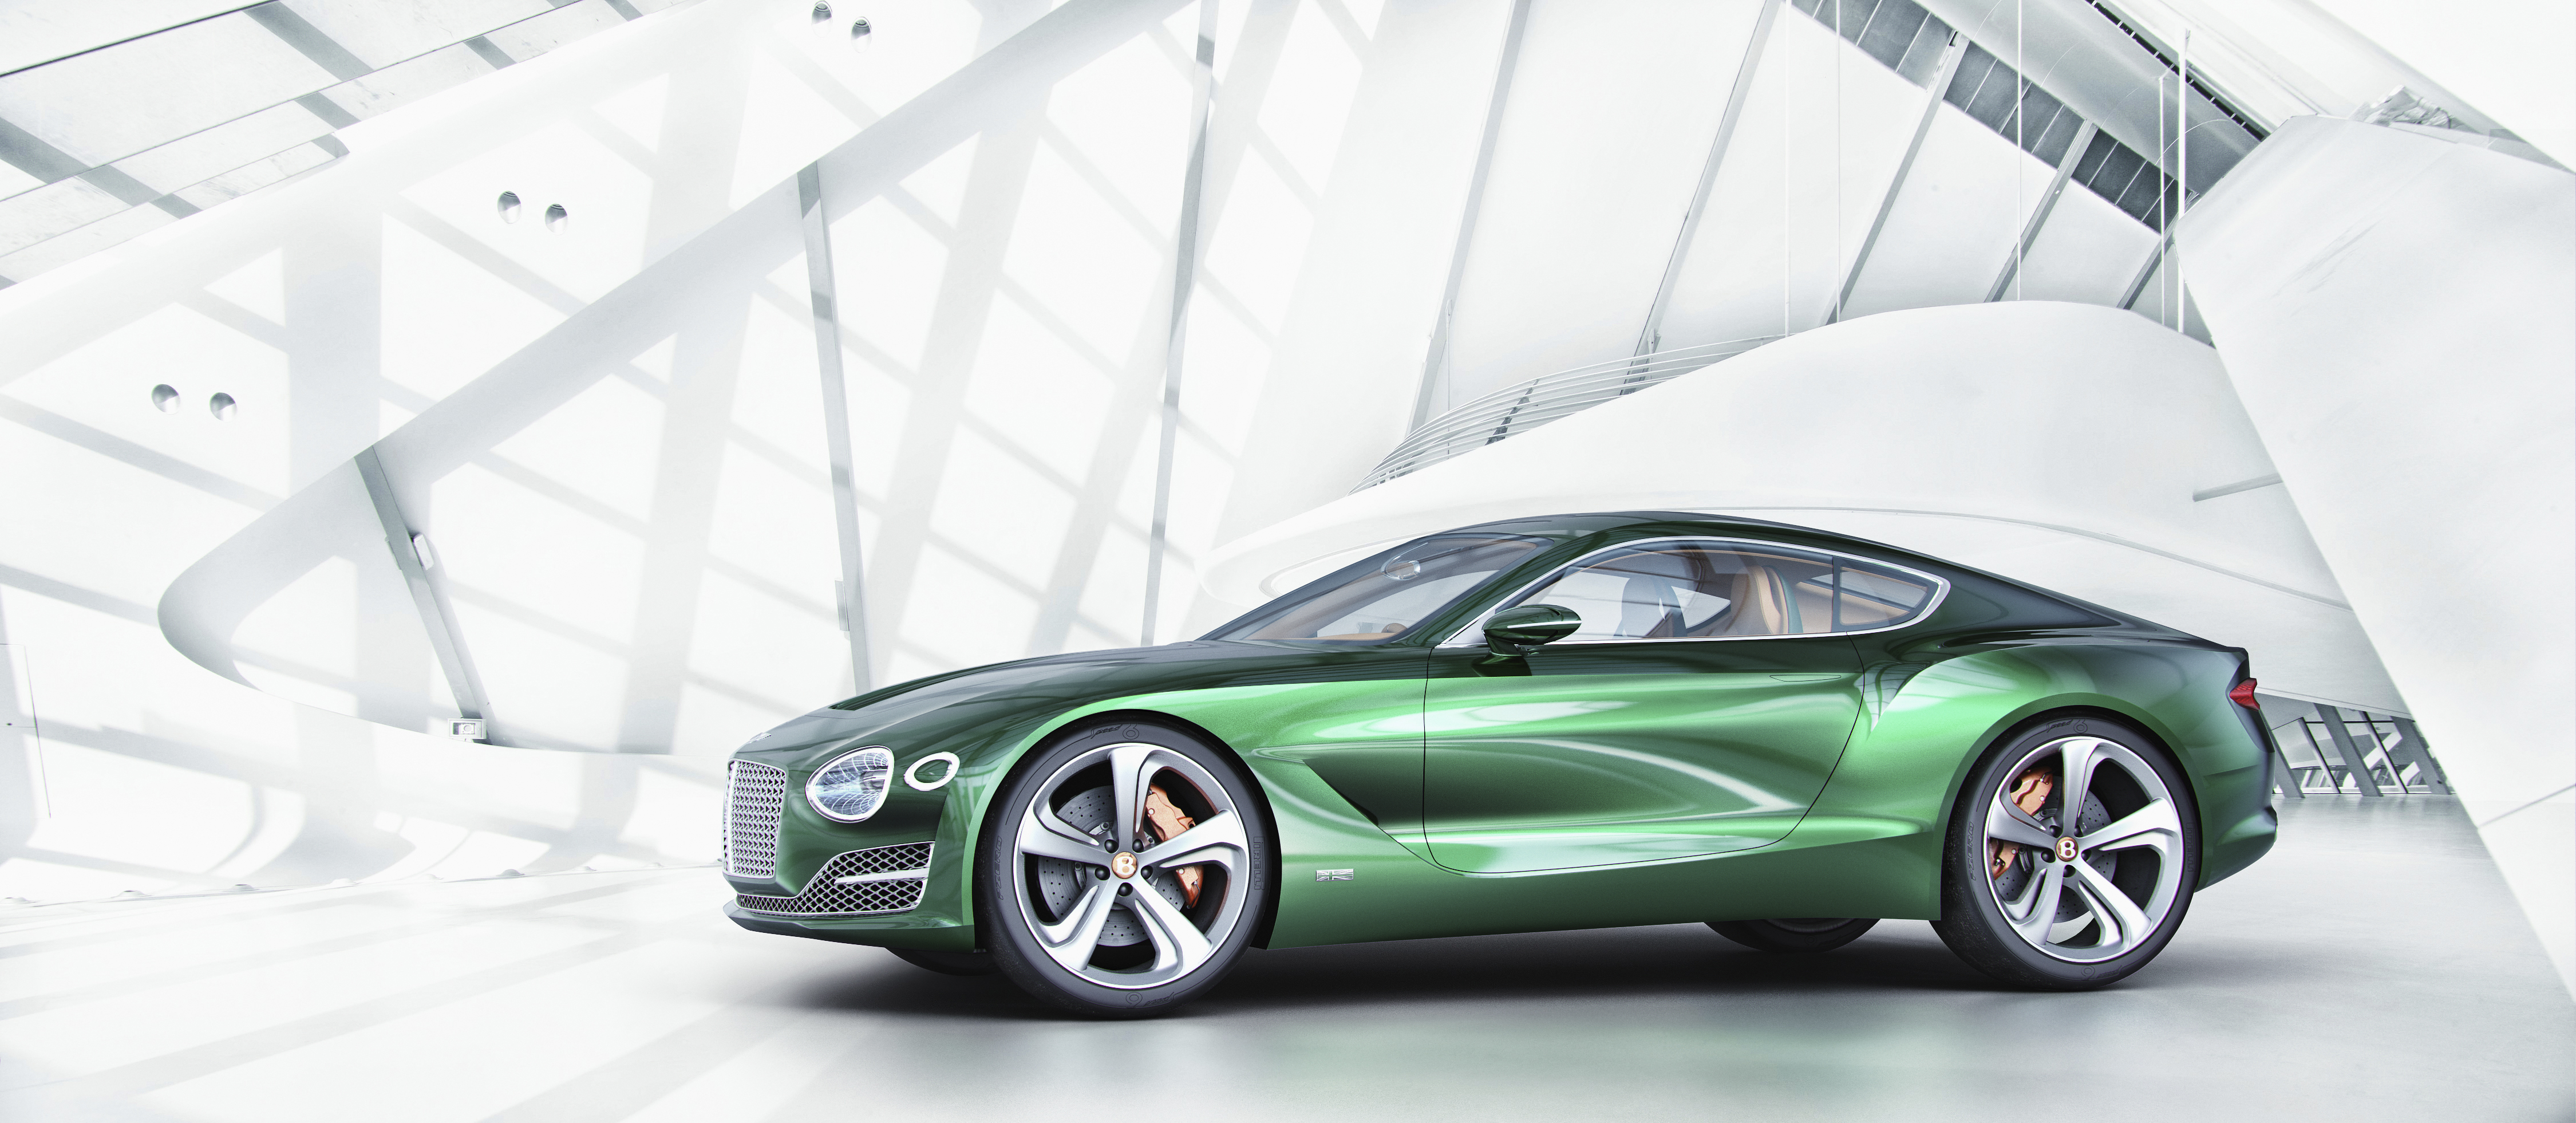 spur who informations bentley the continental makes car articles flying photos